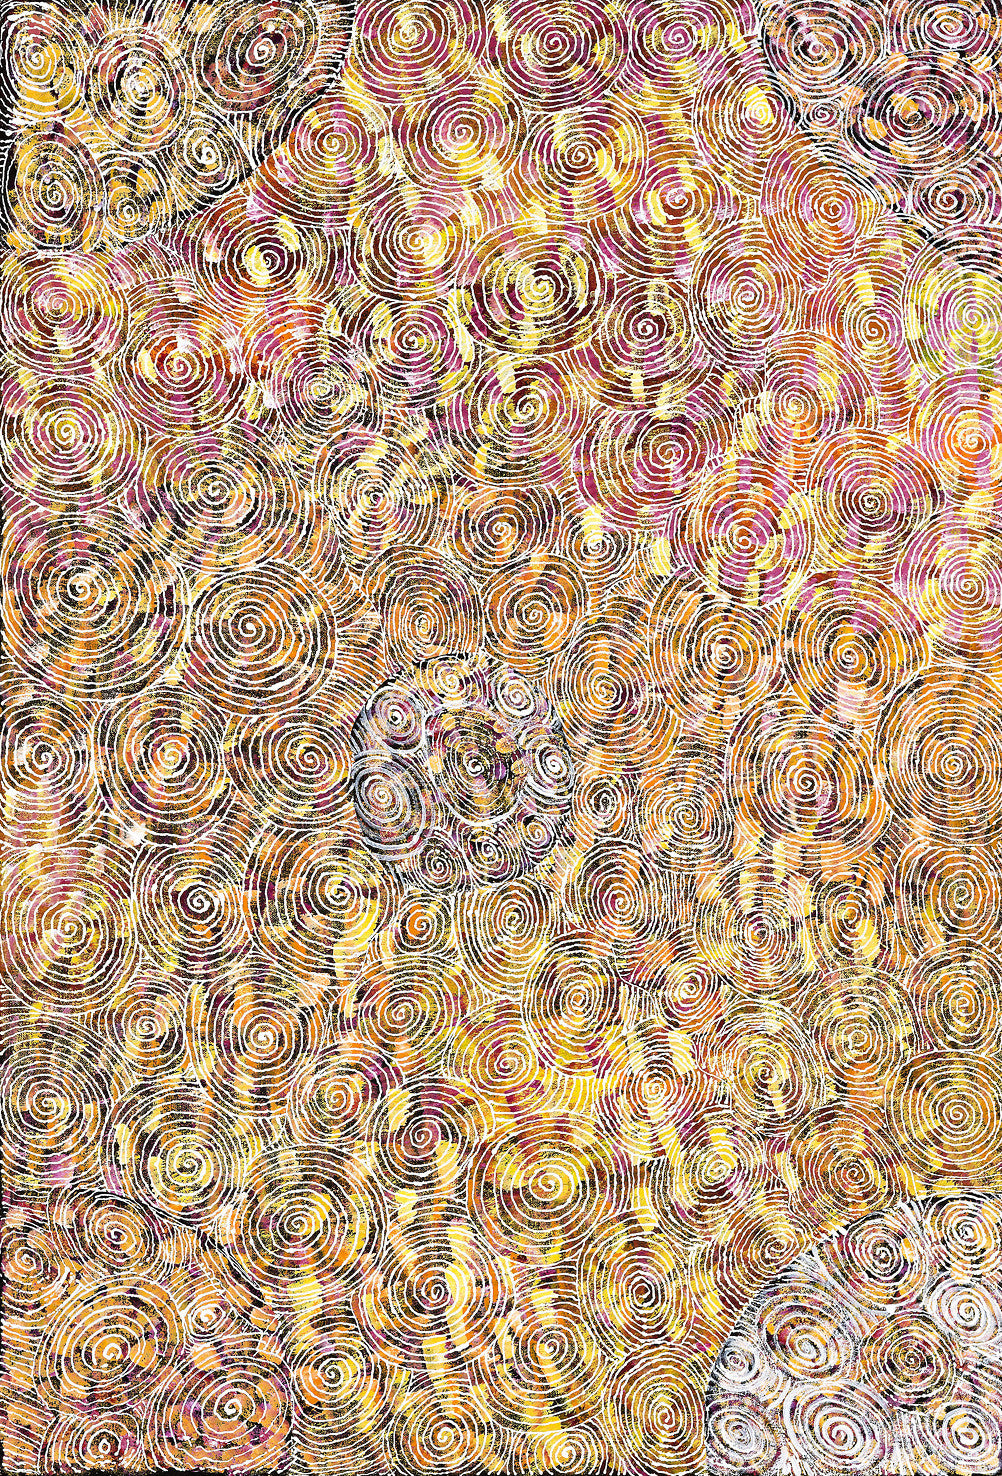 Lucky Kngwarreye, Painting 09K116, 2009, 62x90cm - Delmore Gallery